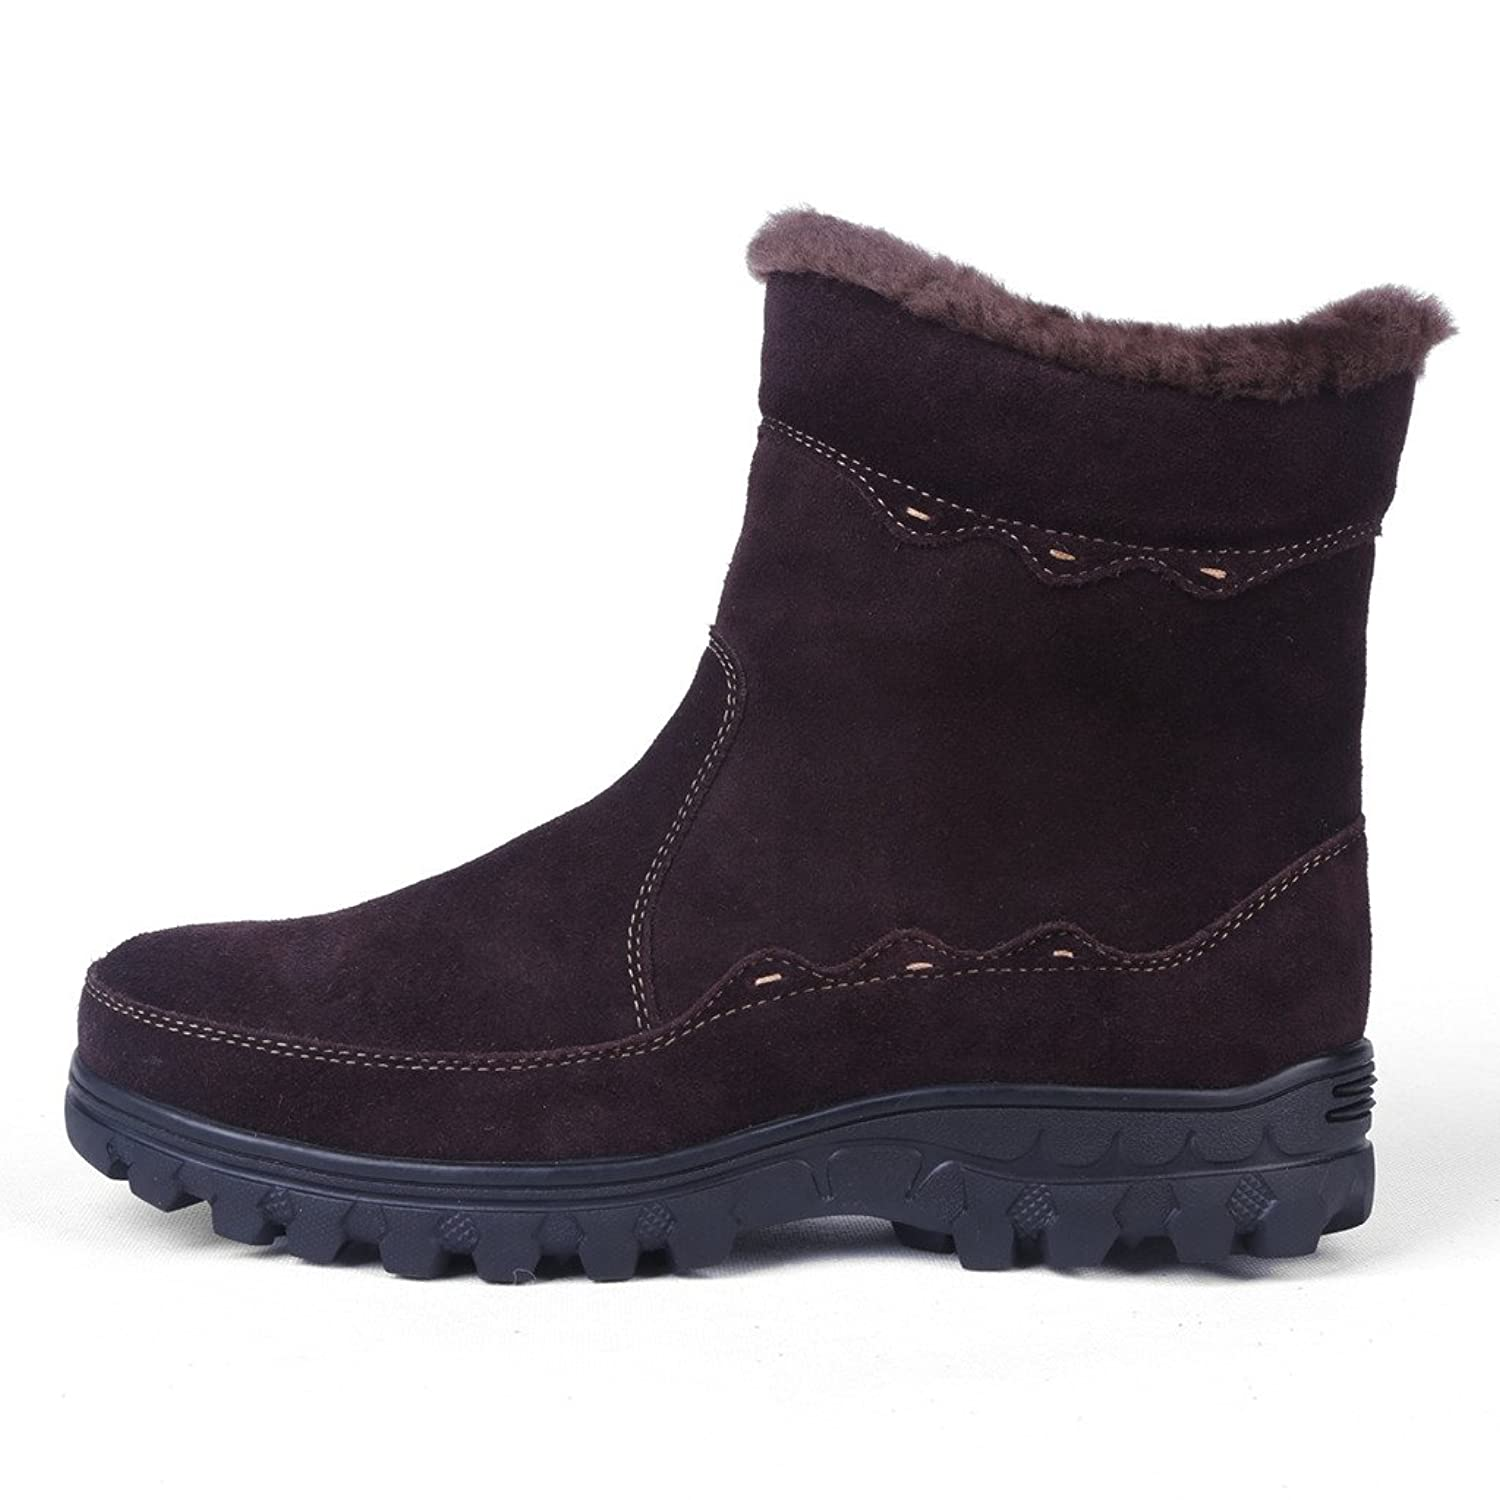 Bull Titan Women Non-slip Snow Boots Fur Lined Winter Shoes Suede Leather